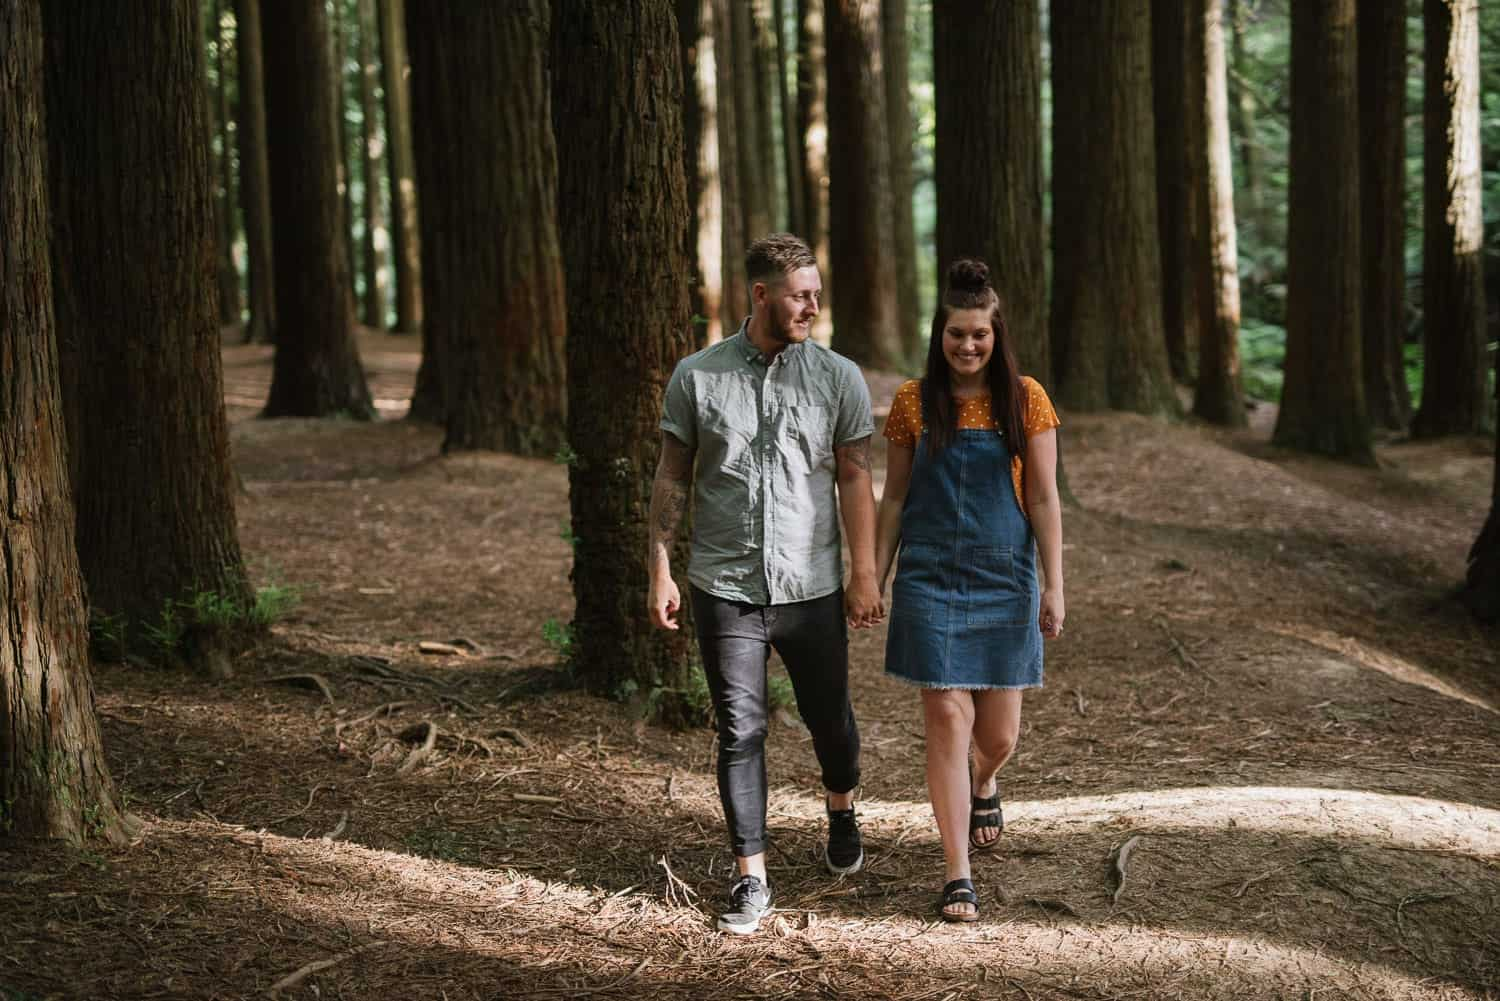 Chelsea and Luke walk through the redwood forest